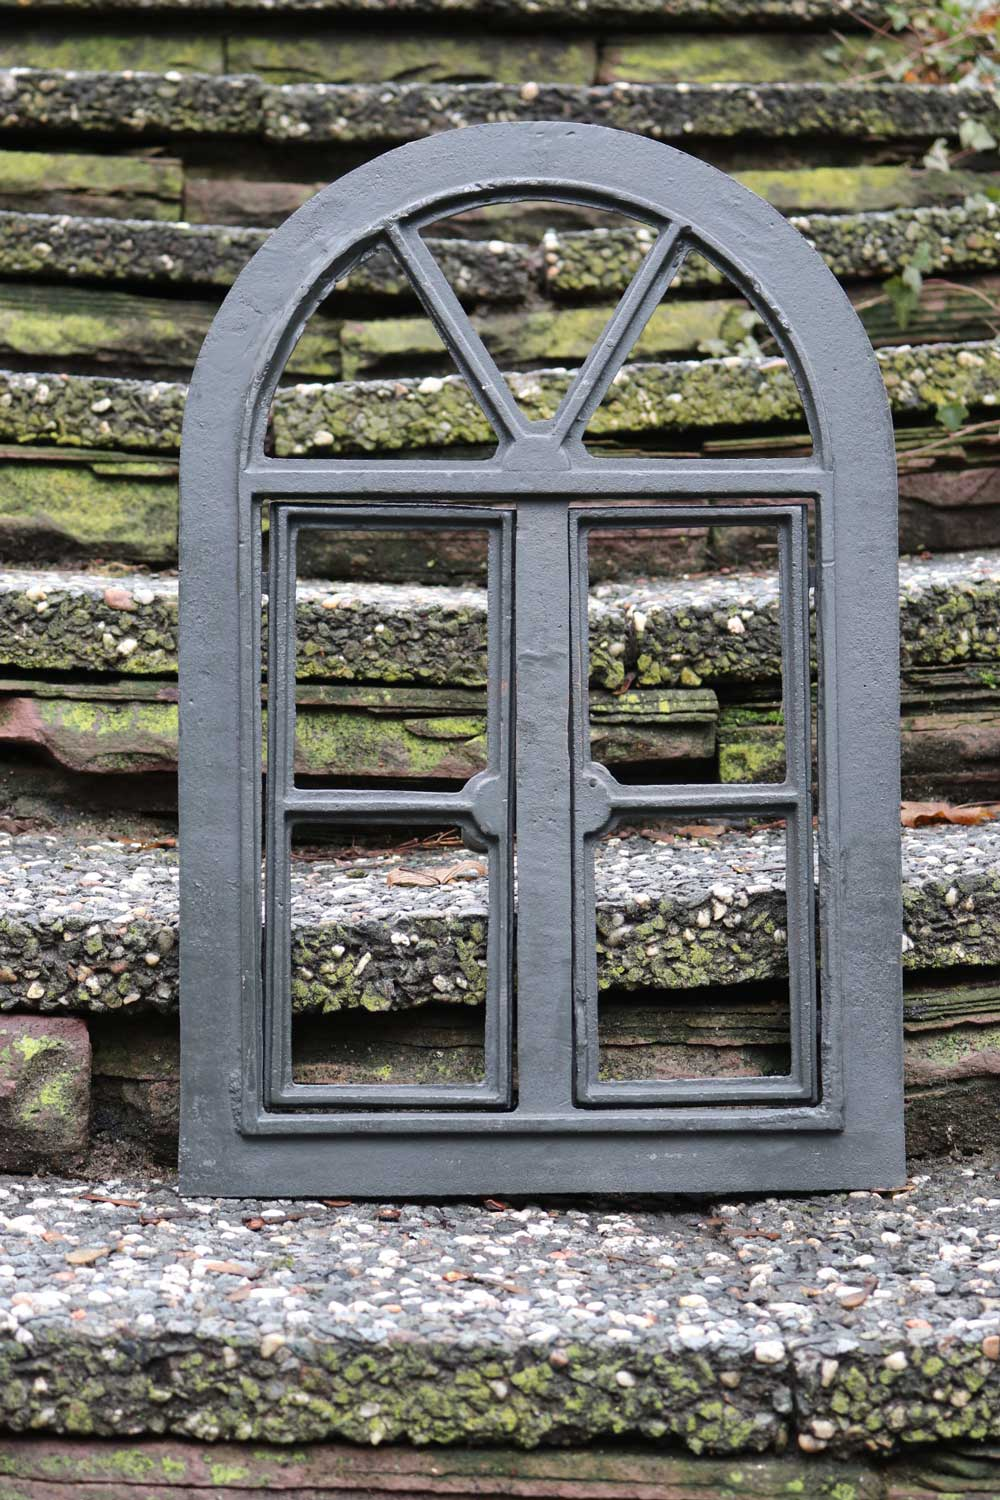 Holzgeländer Grau Window Frame To Open Gray Iron Antique Style 39 X 59cm